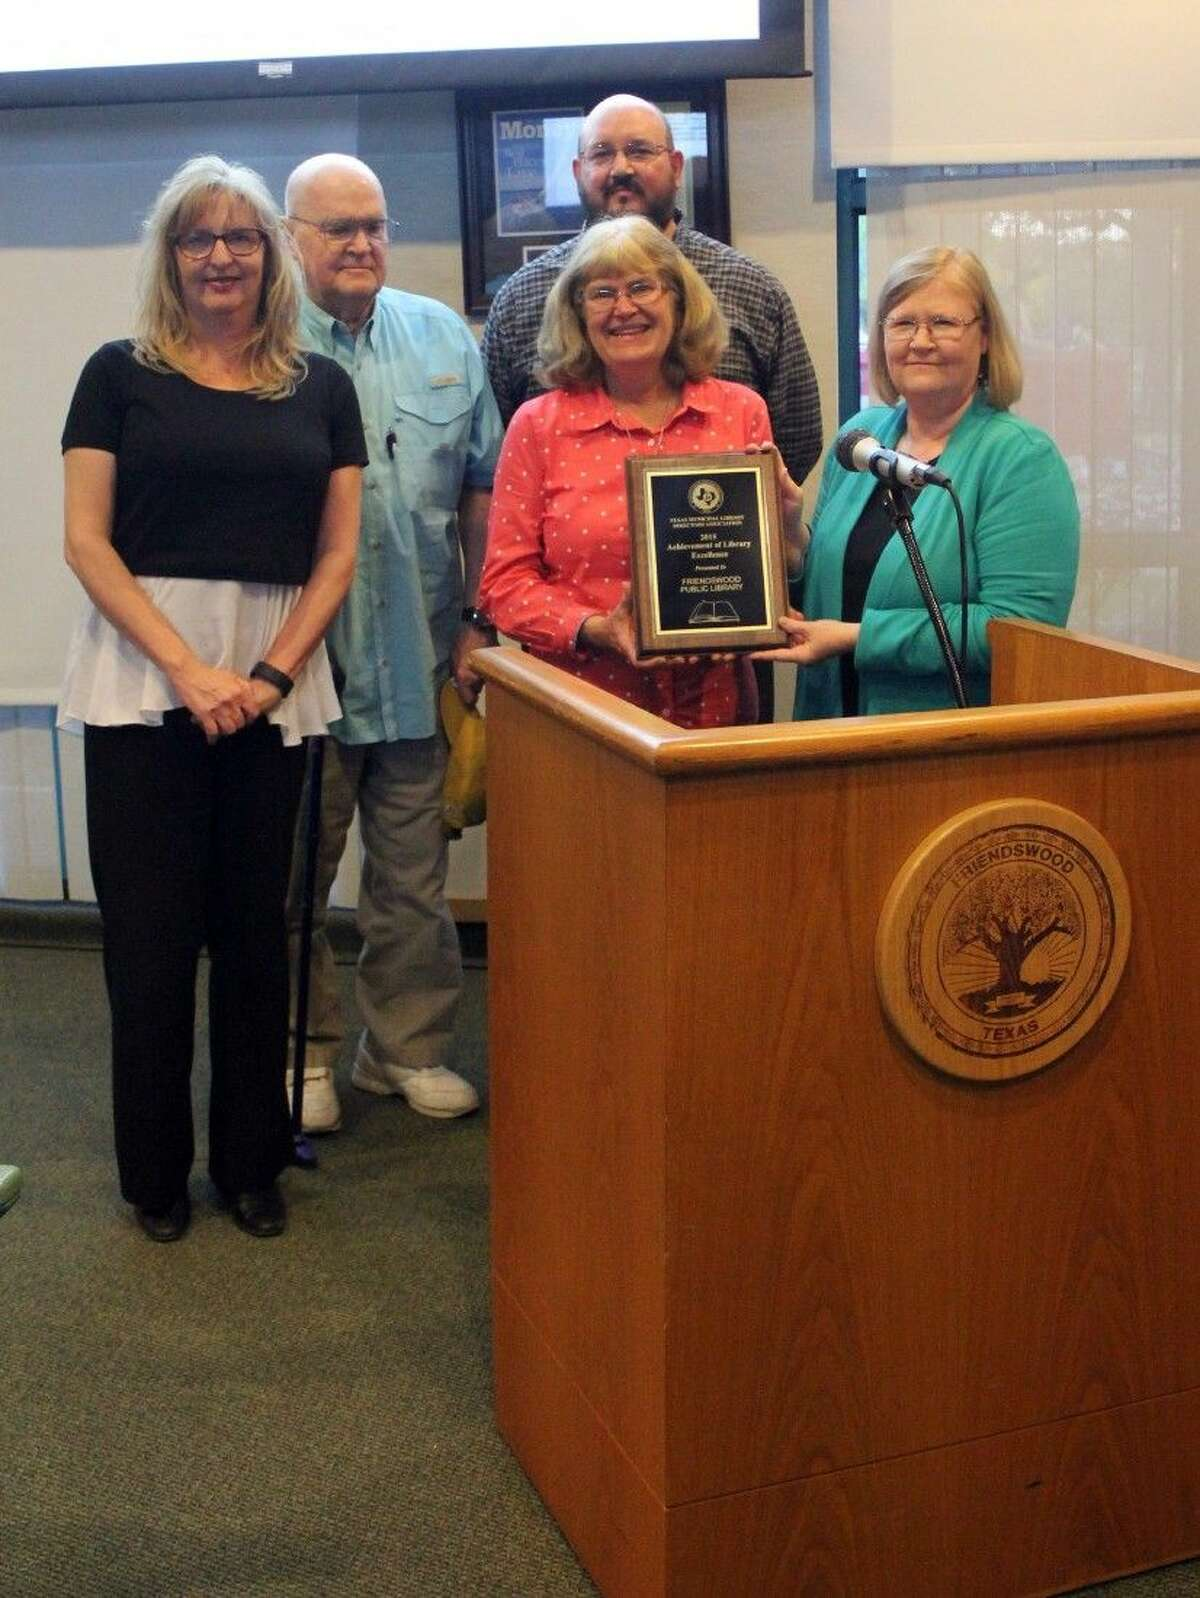 The Friendswood Public Library was recently honored by Mayor Kevin Holland and the City Council for receiving the 2015 Achievement of Library Excellence Award from the Texas Municipal Library Directors Association. Pictured from the left: Library Board Members Ruth Law and Ted Thomas, Library Director Mary Peroni, Assistant Library Director Matthew Riley (in the back) and library assistant Karen Hart.